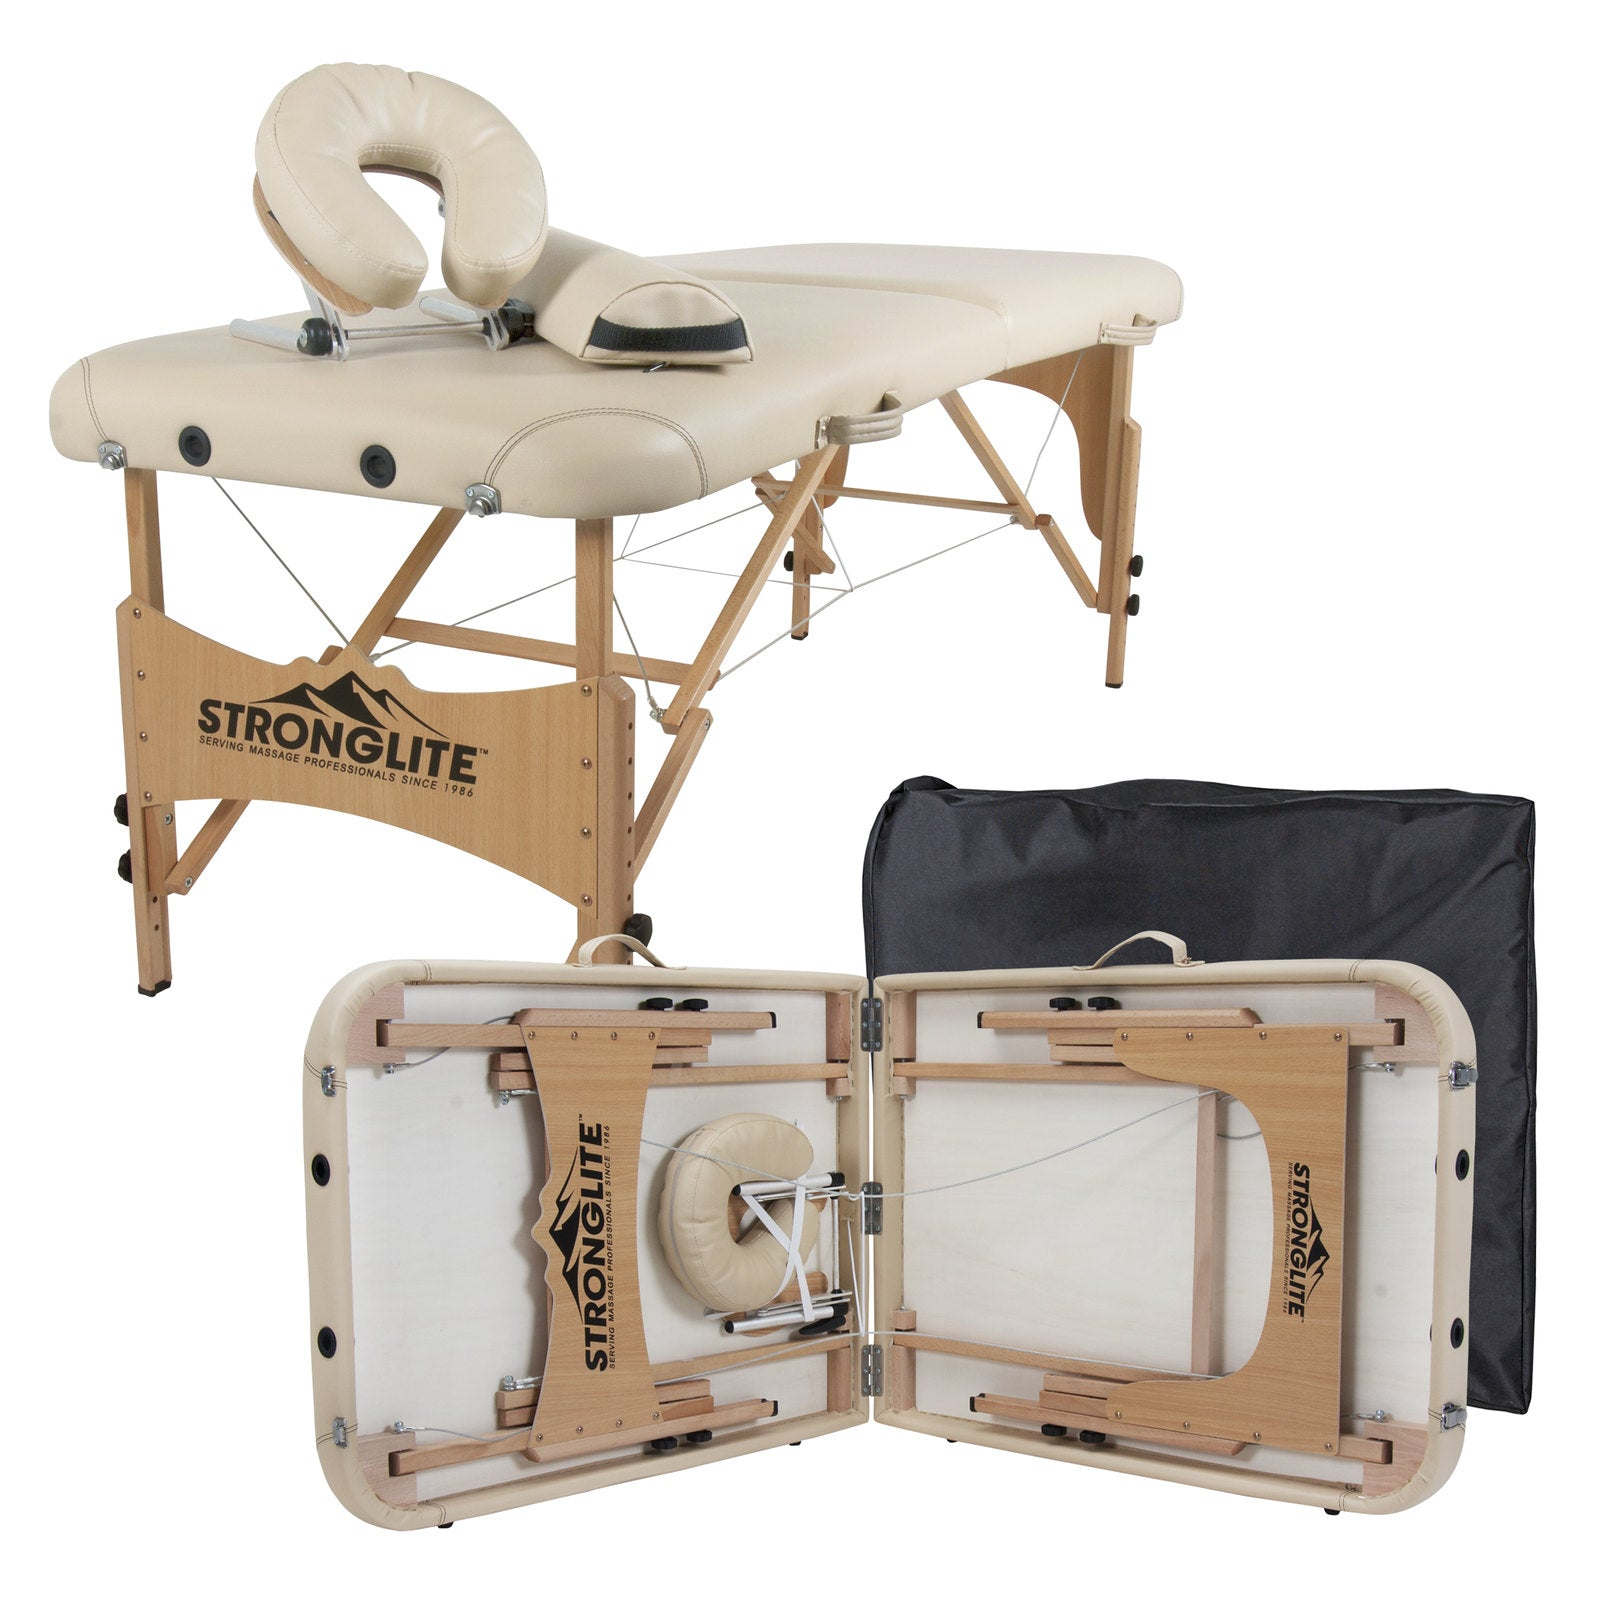 "STRONGLITE Portable Massage Table Olympia - Full Package w/Adjustable Face Cradle, Face Pillow, Half Round Bolster & Carry Case (28x 73"")"